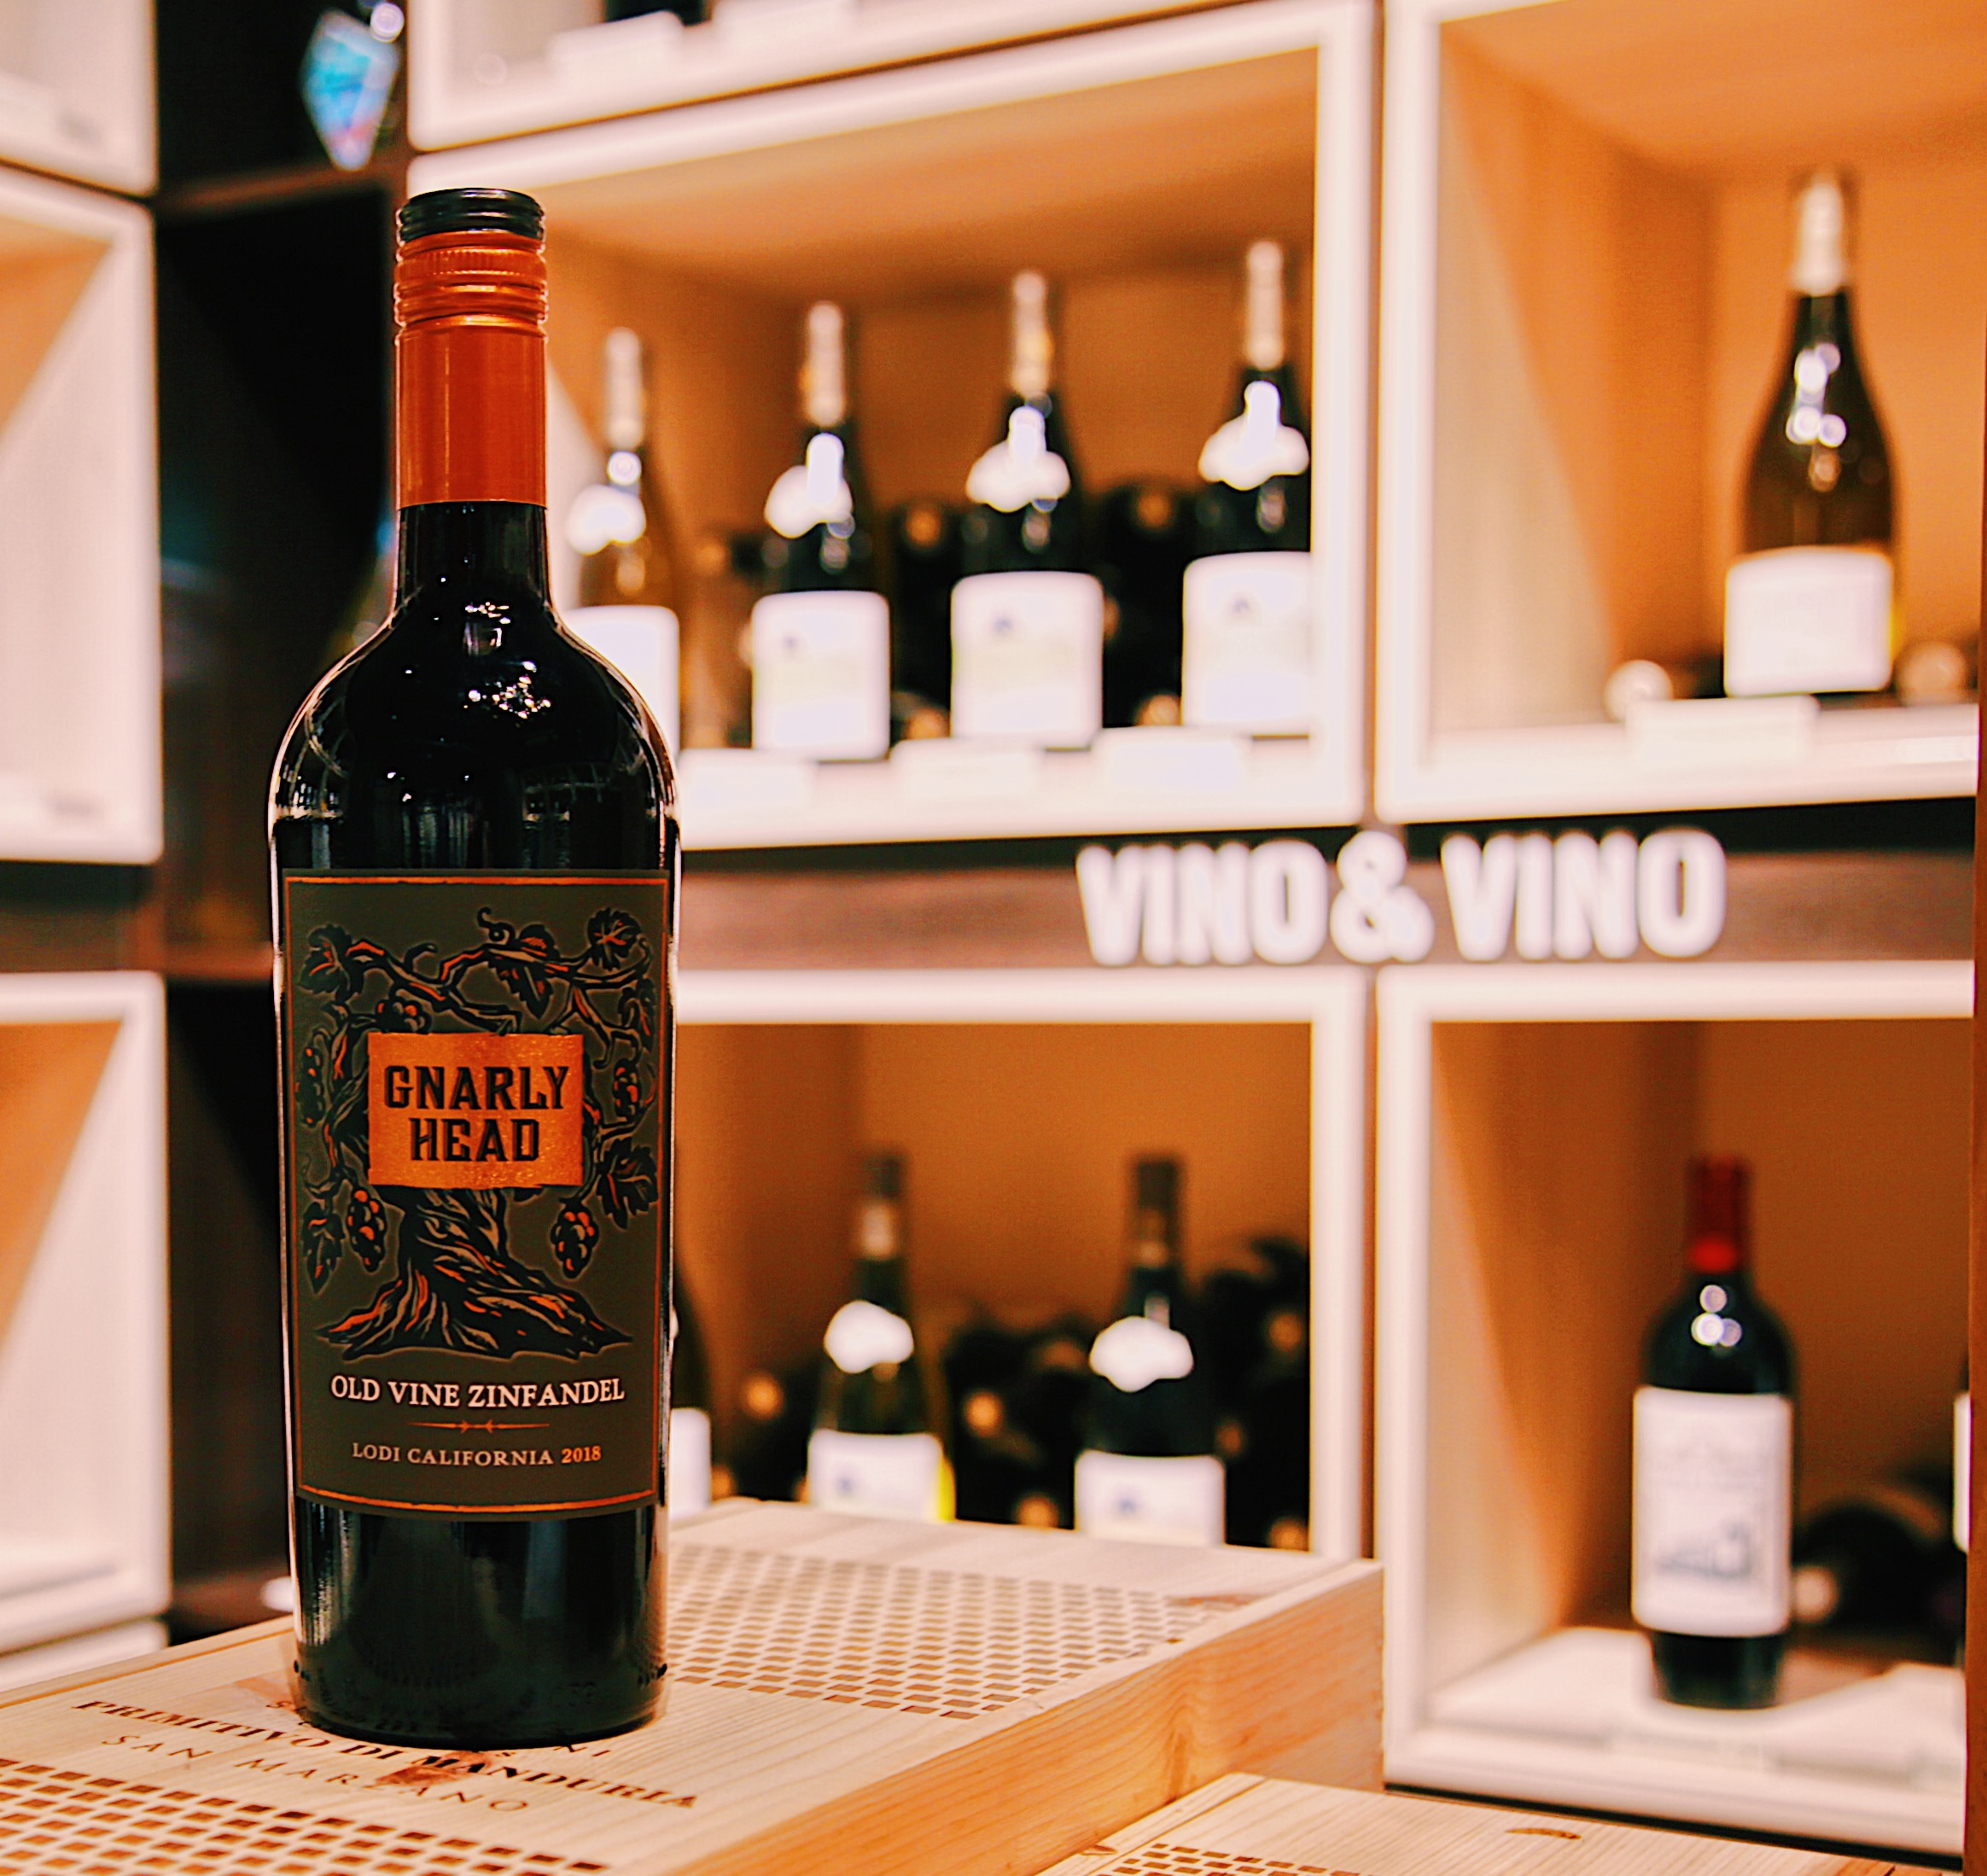 Gnarly Head – Old Zinfandel